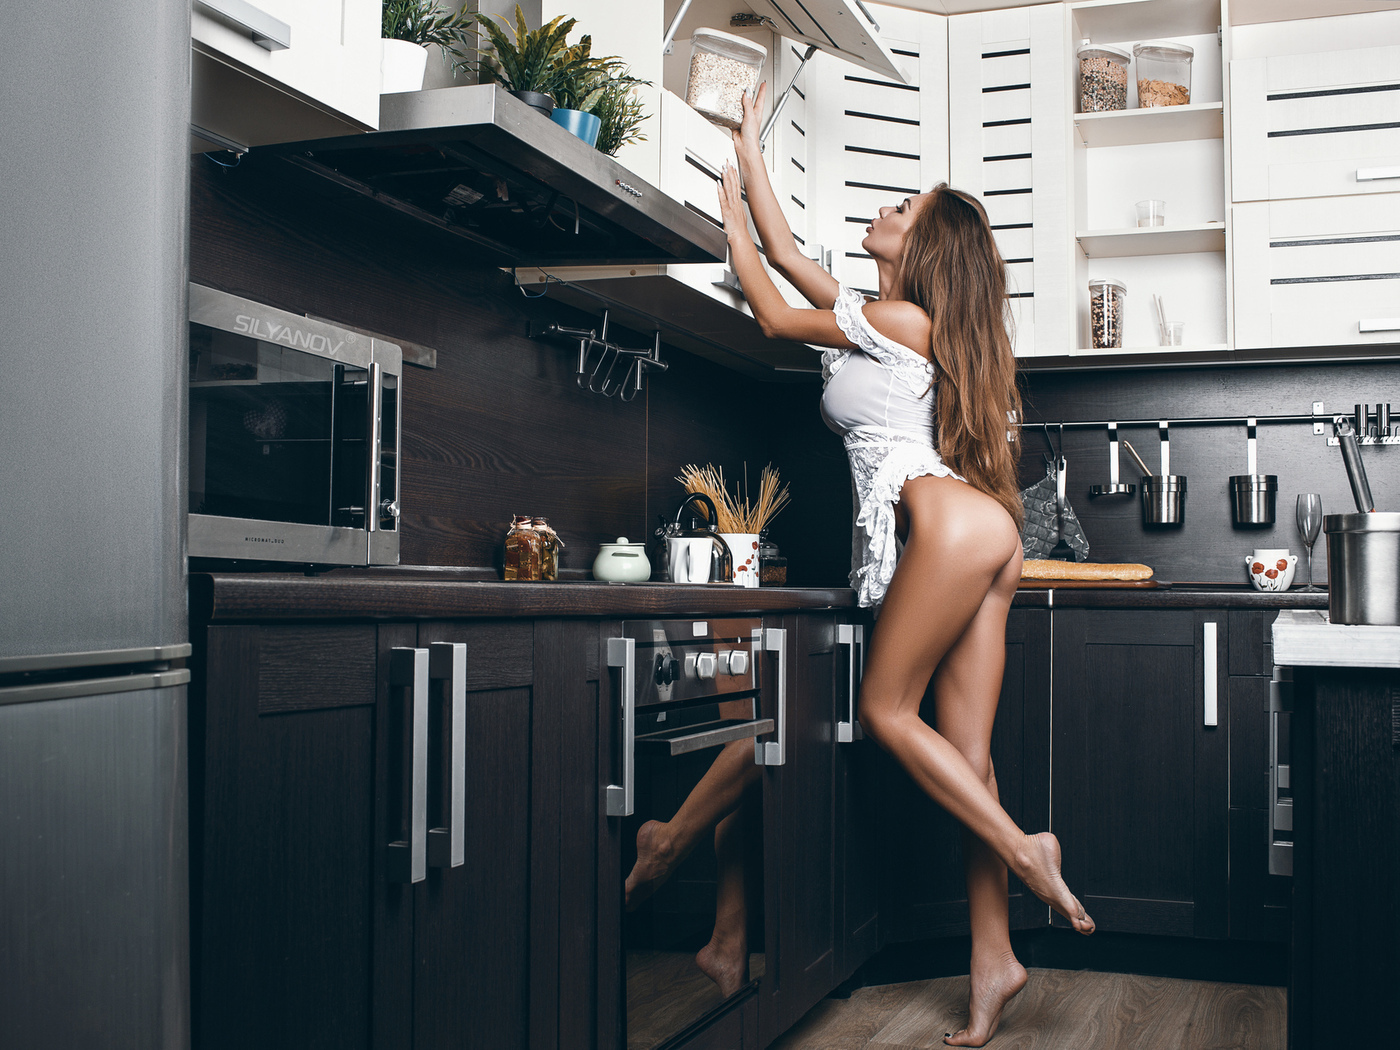 Skinny Brunette With A Fairly Toned Body Gets Naked In The Kitchen